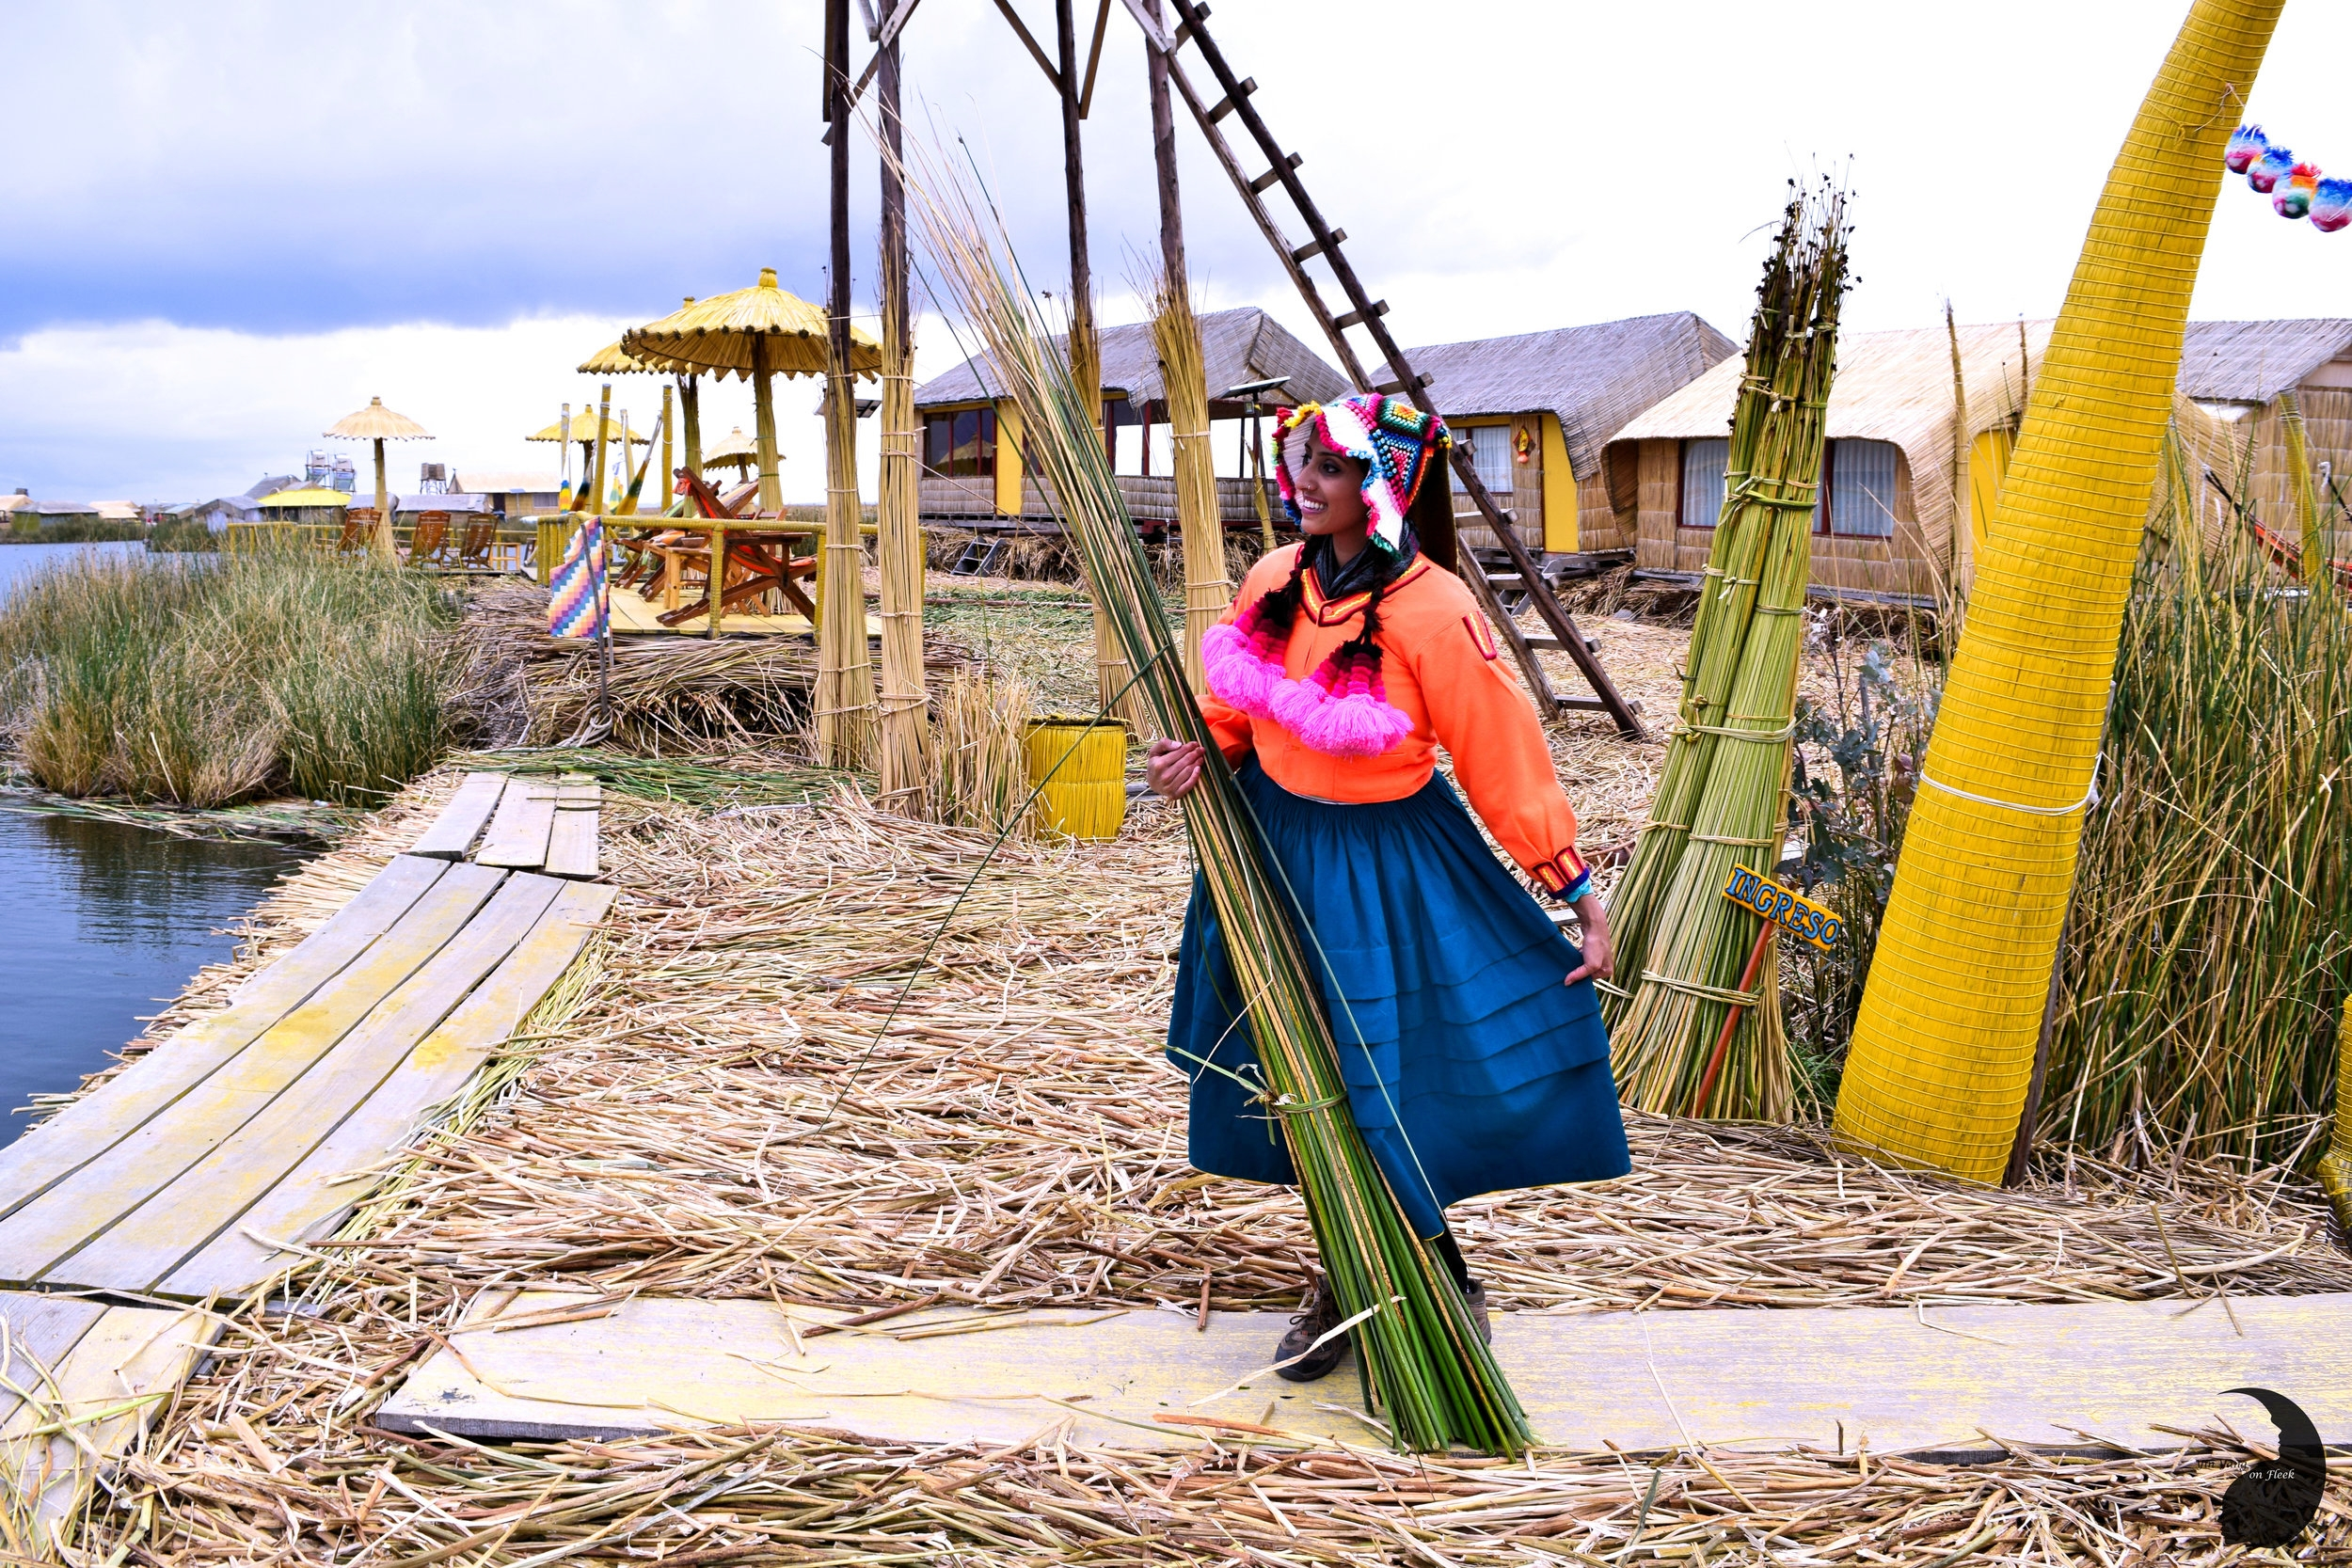 Floating island of Uros- Culture Trip